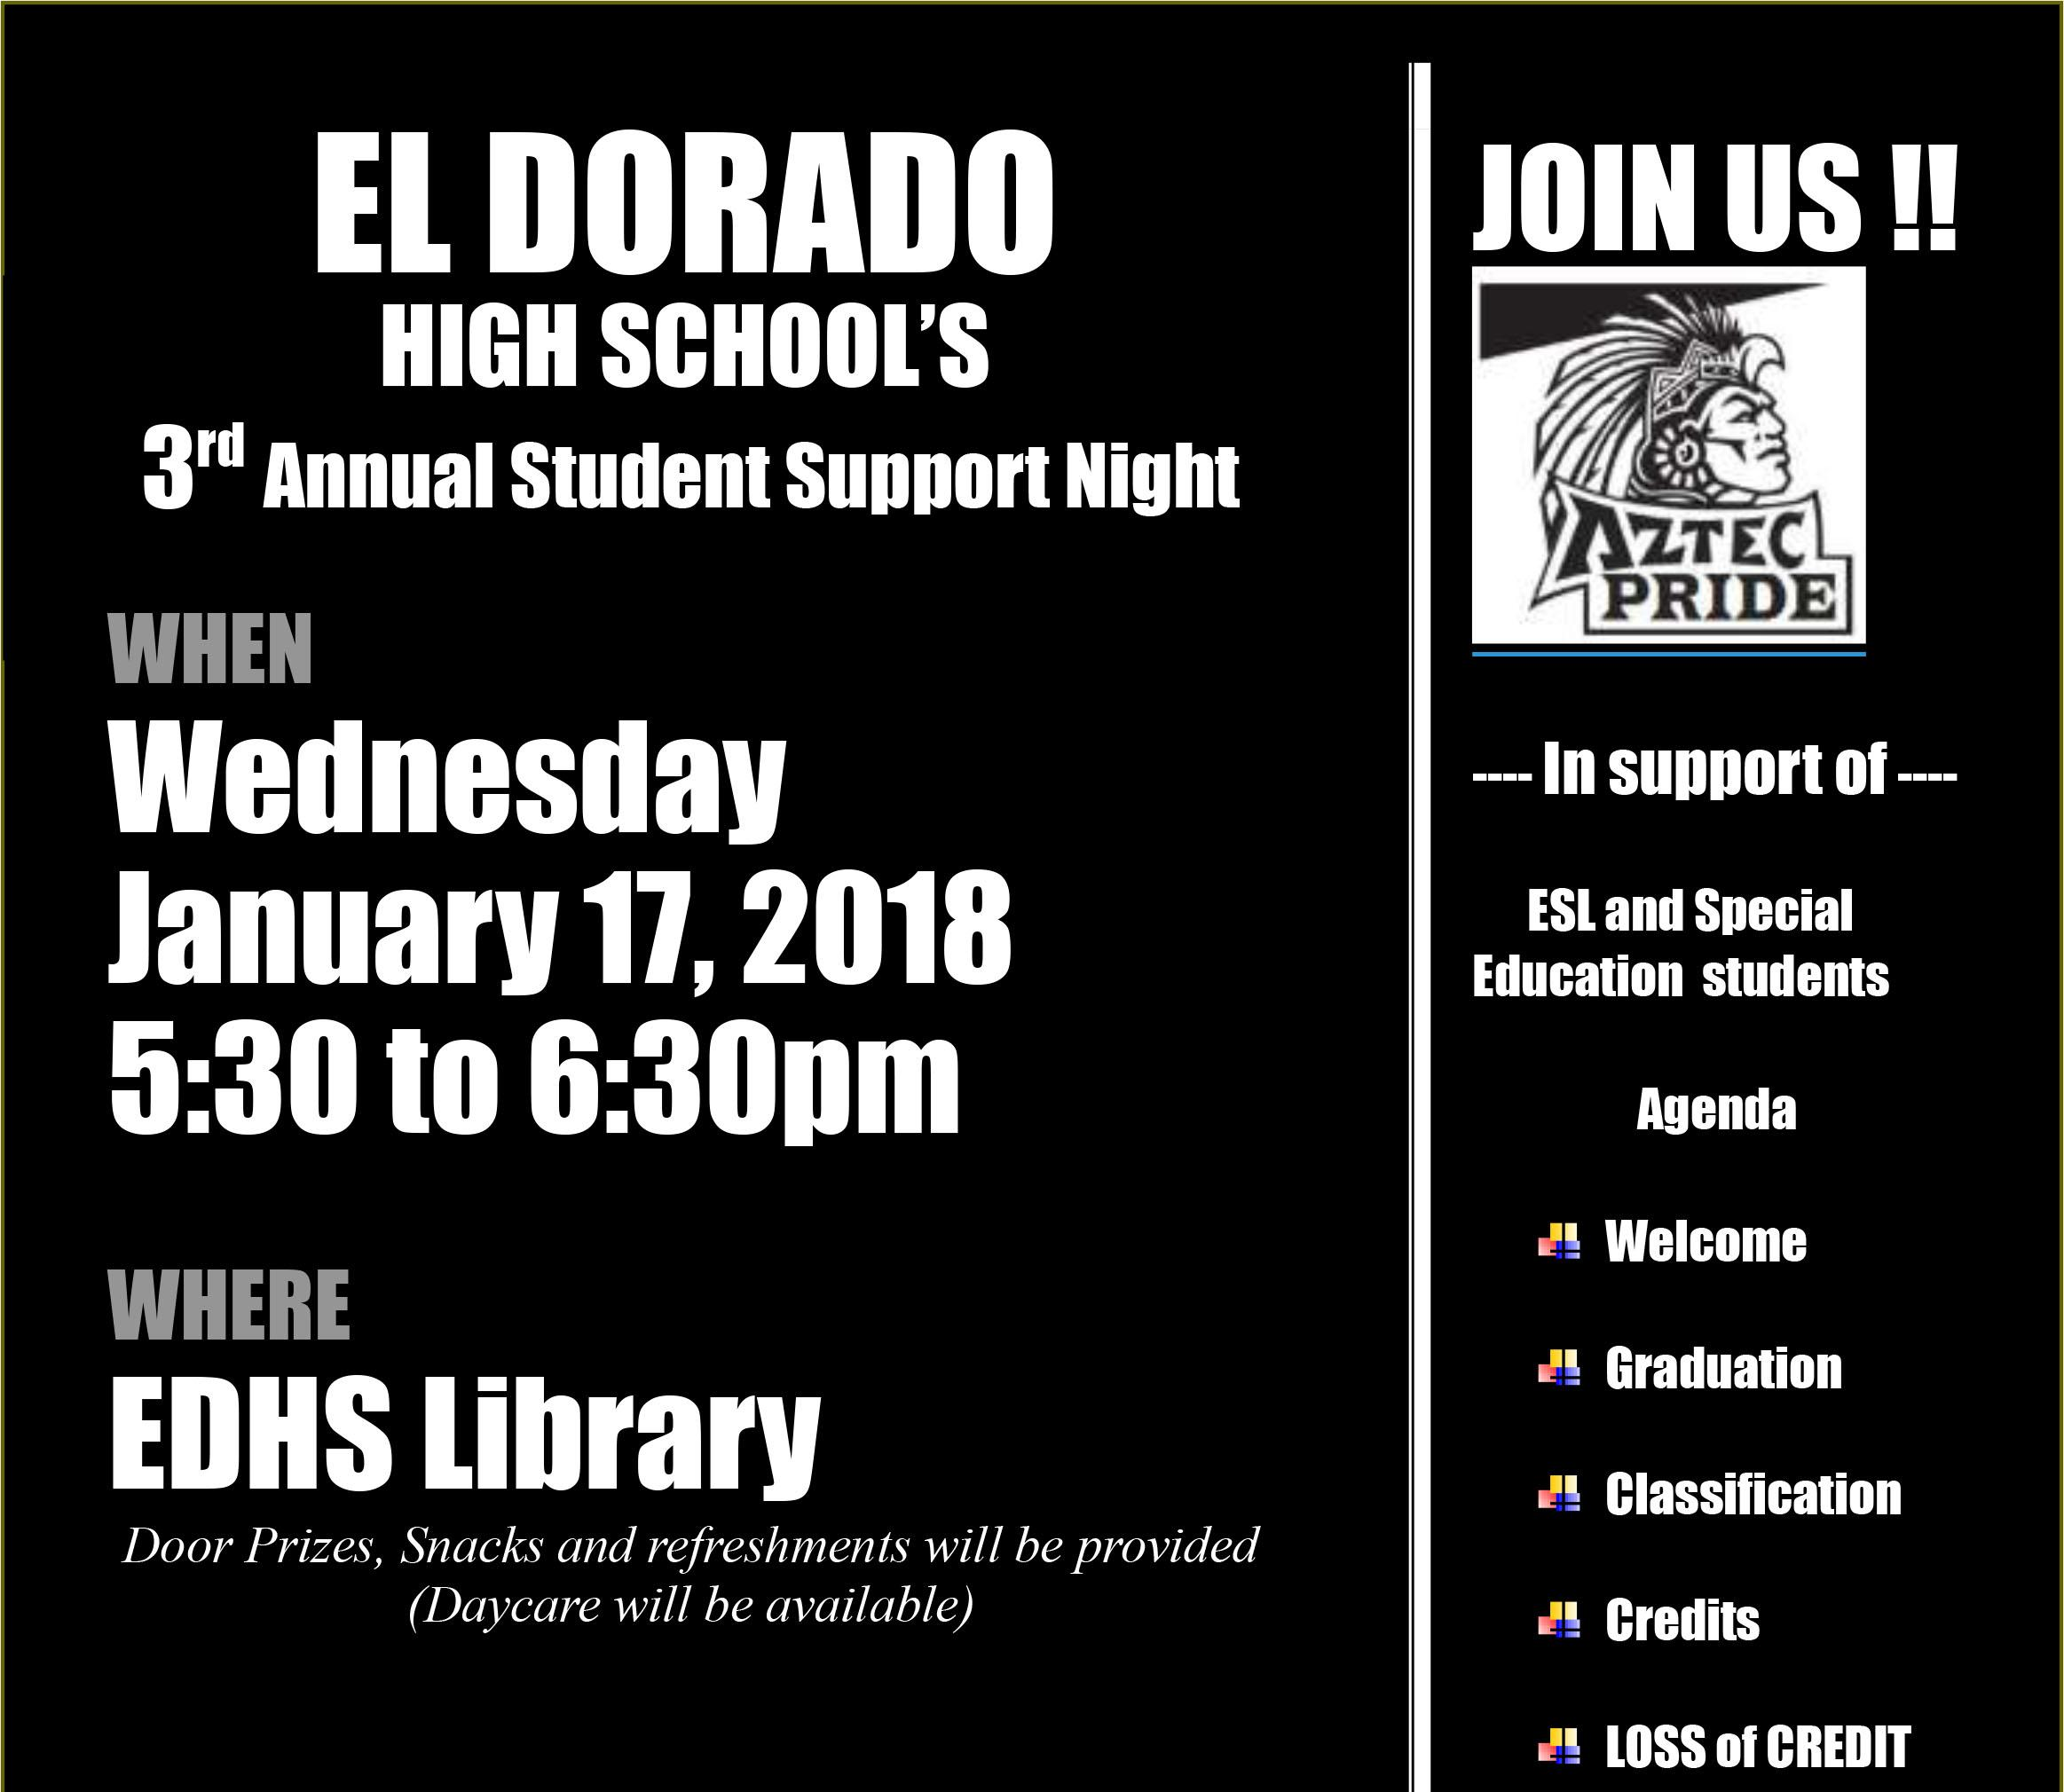 Student Support Night